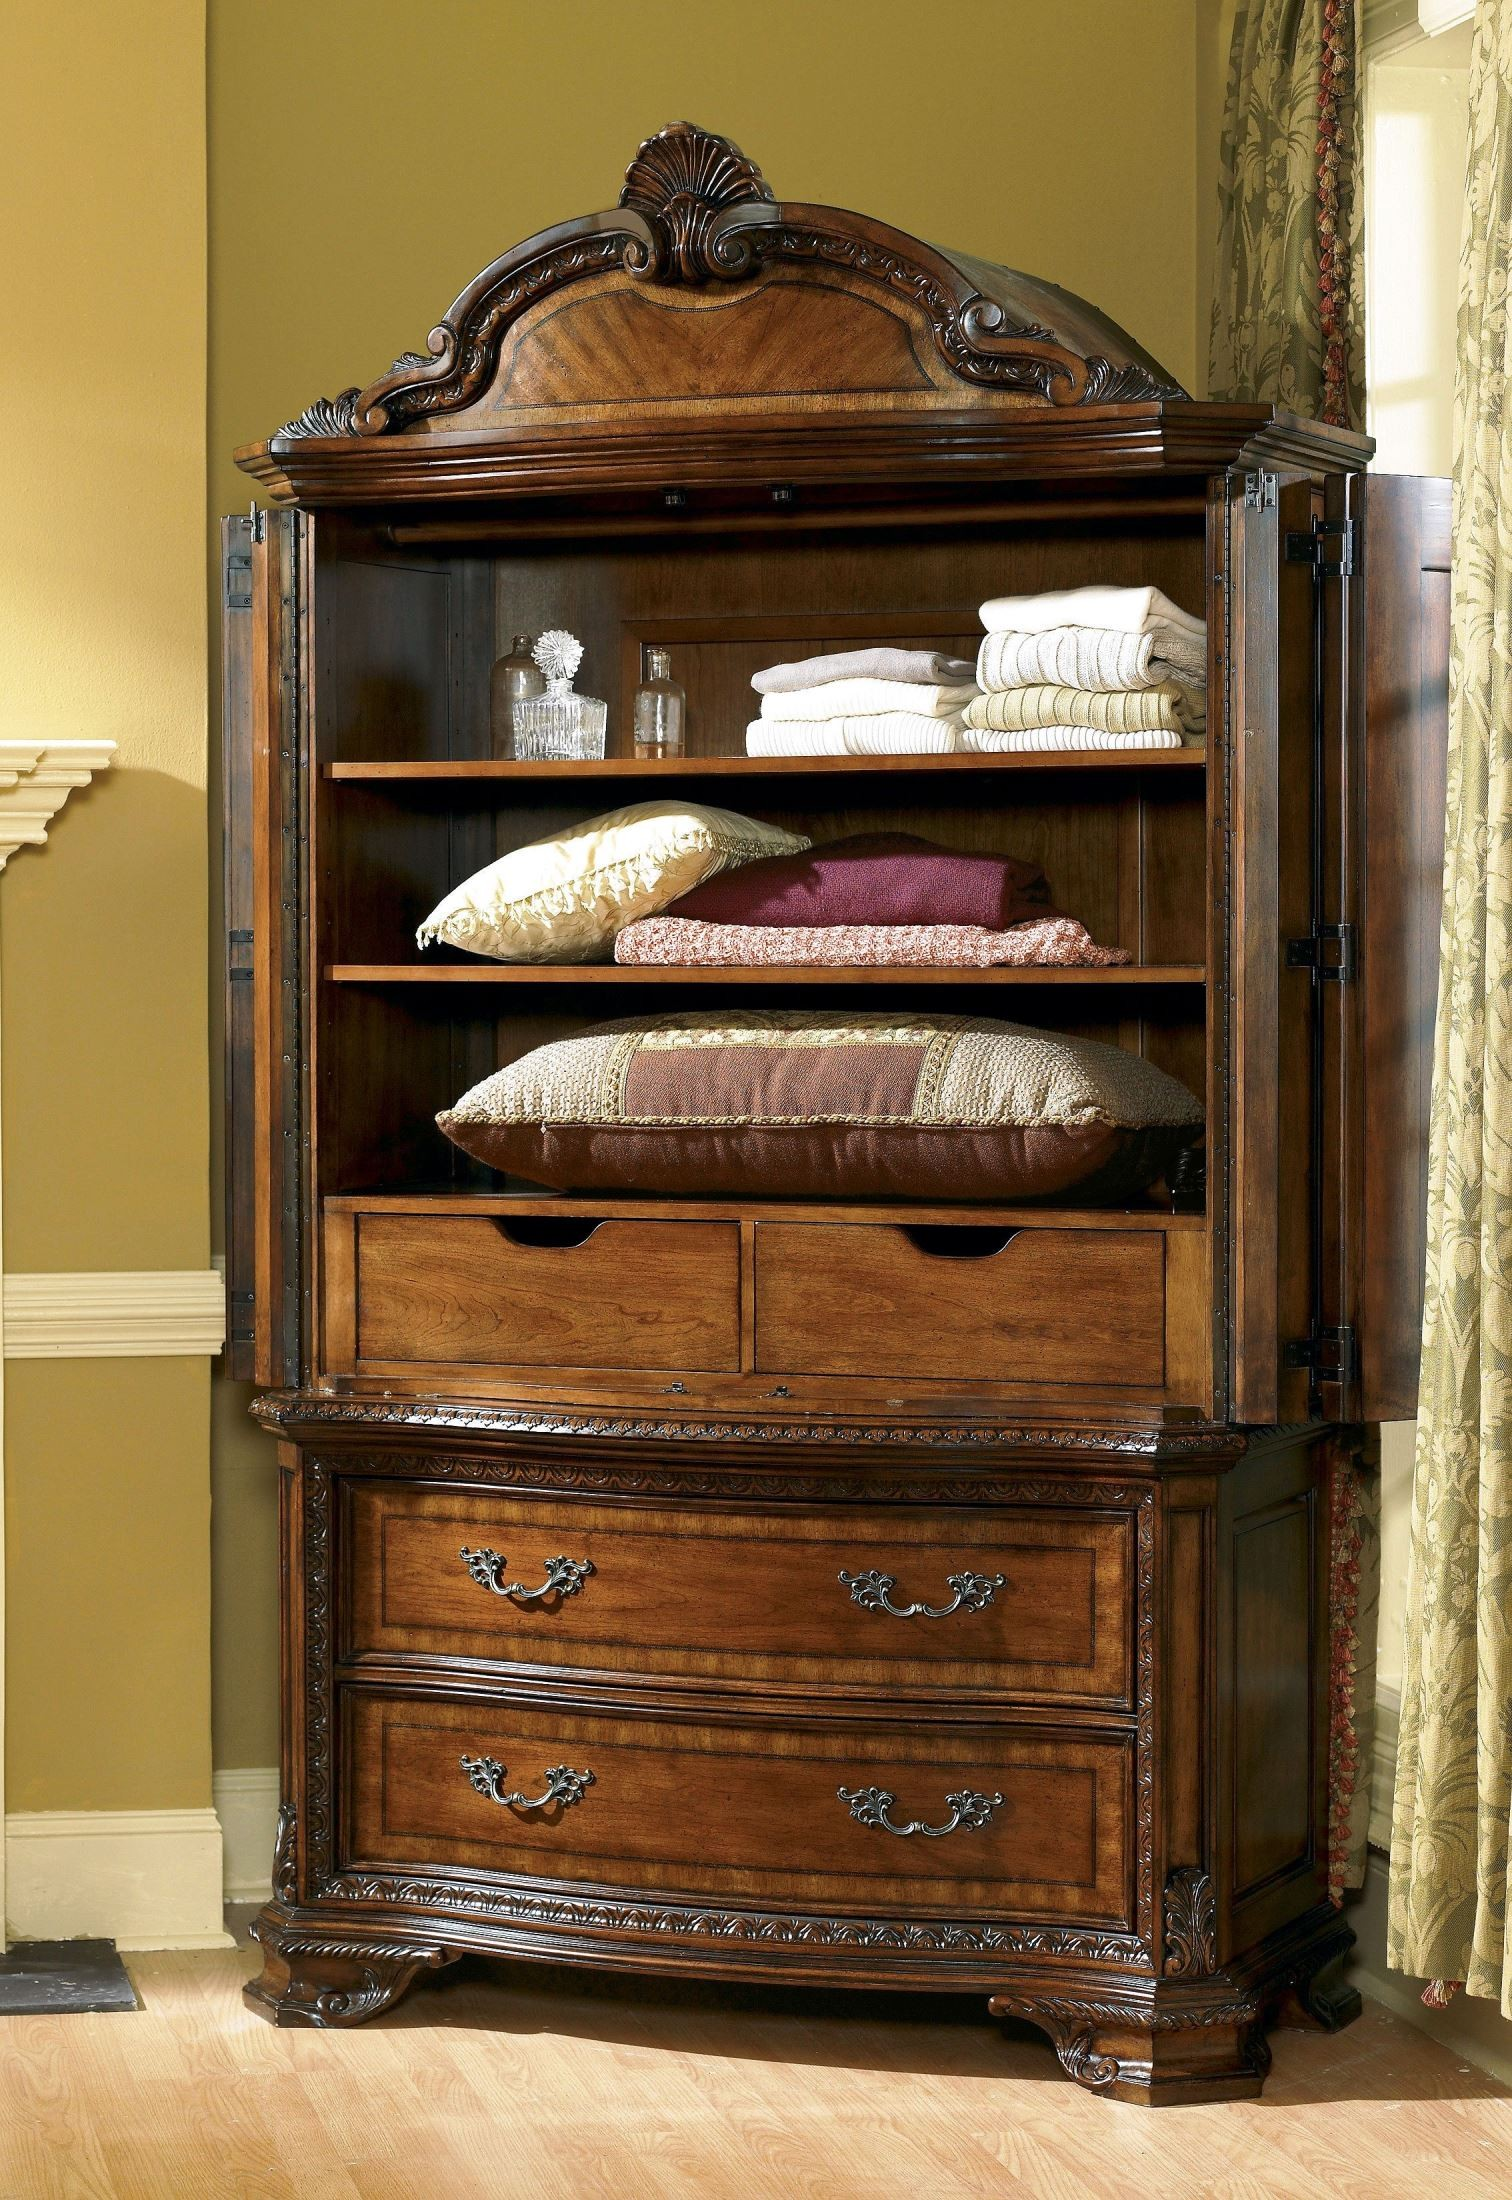 Old world armoire from art 143160 2606 coleman furniture for Old world furniture